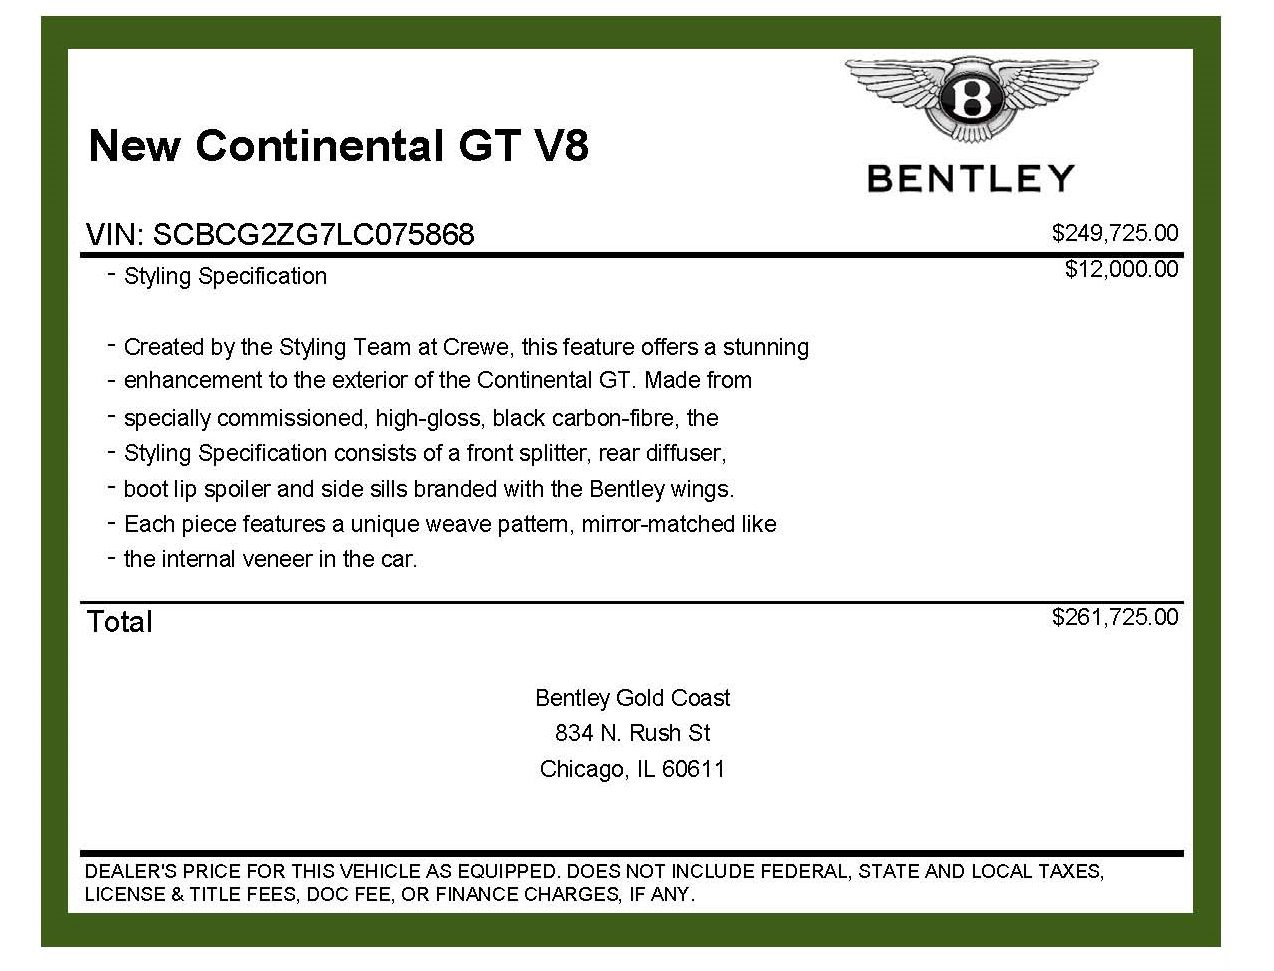 New 2020 Bentley Continental GT V8 GT V8 Styling Specification | Chicago, IL